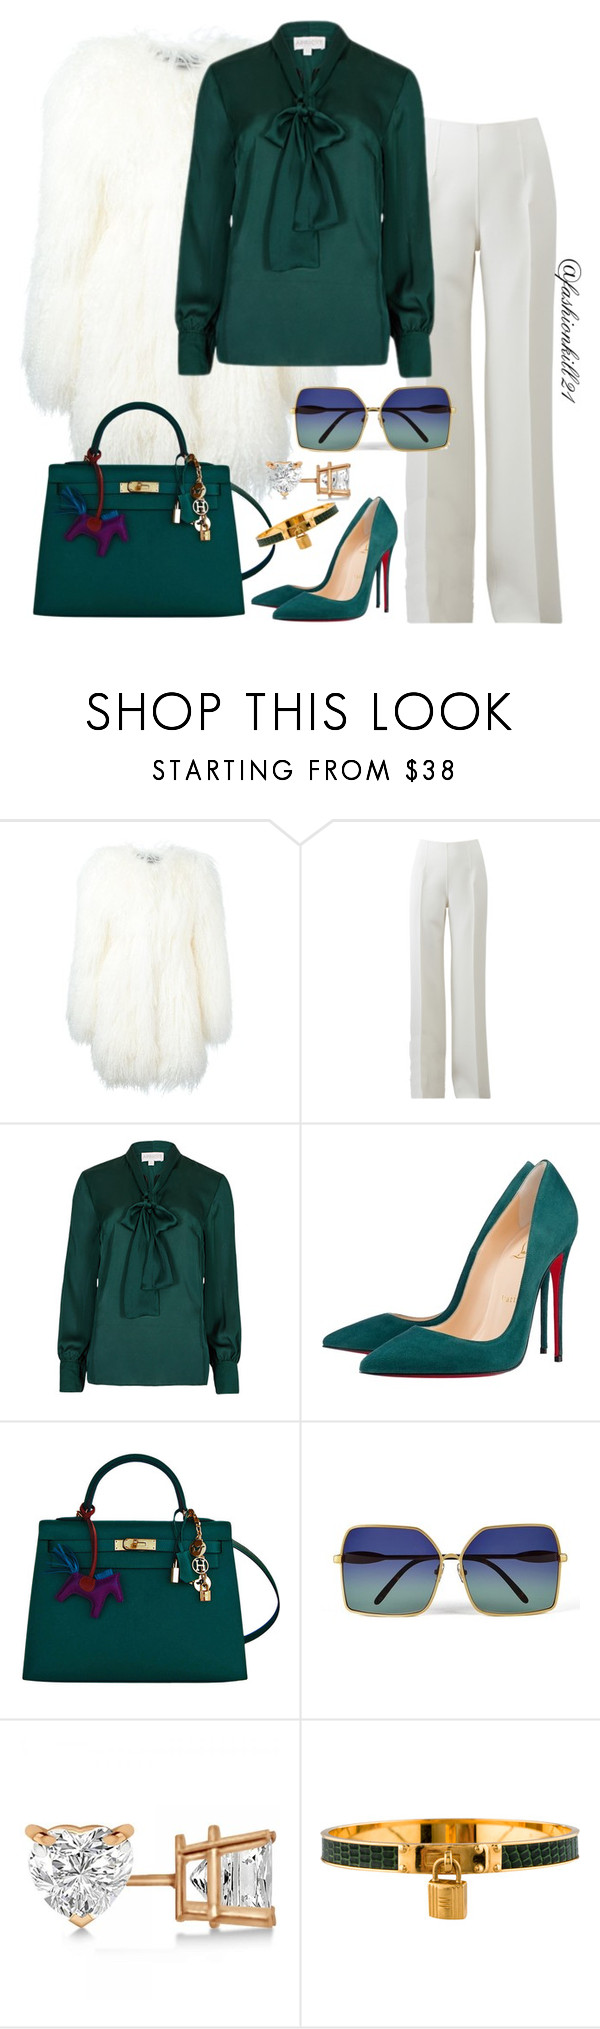 """NYFW2016"" by fashionkill21 ❤ liked on Polyvore featuring Philipp Plein, Michael Kors, Christian Louboutin, Hermès, Wildfox and Allurez"